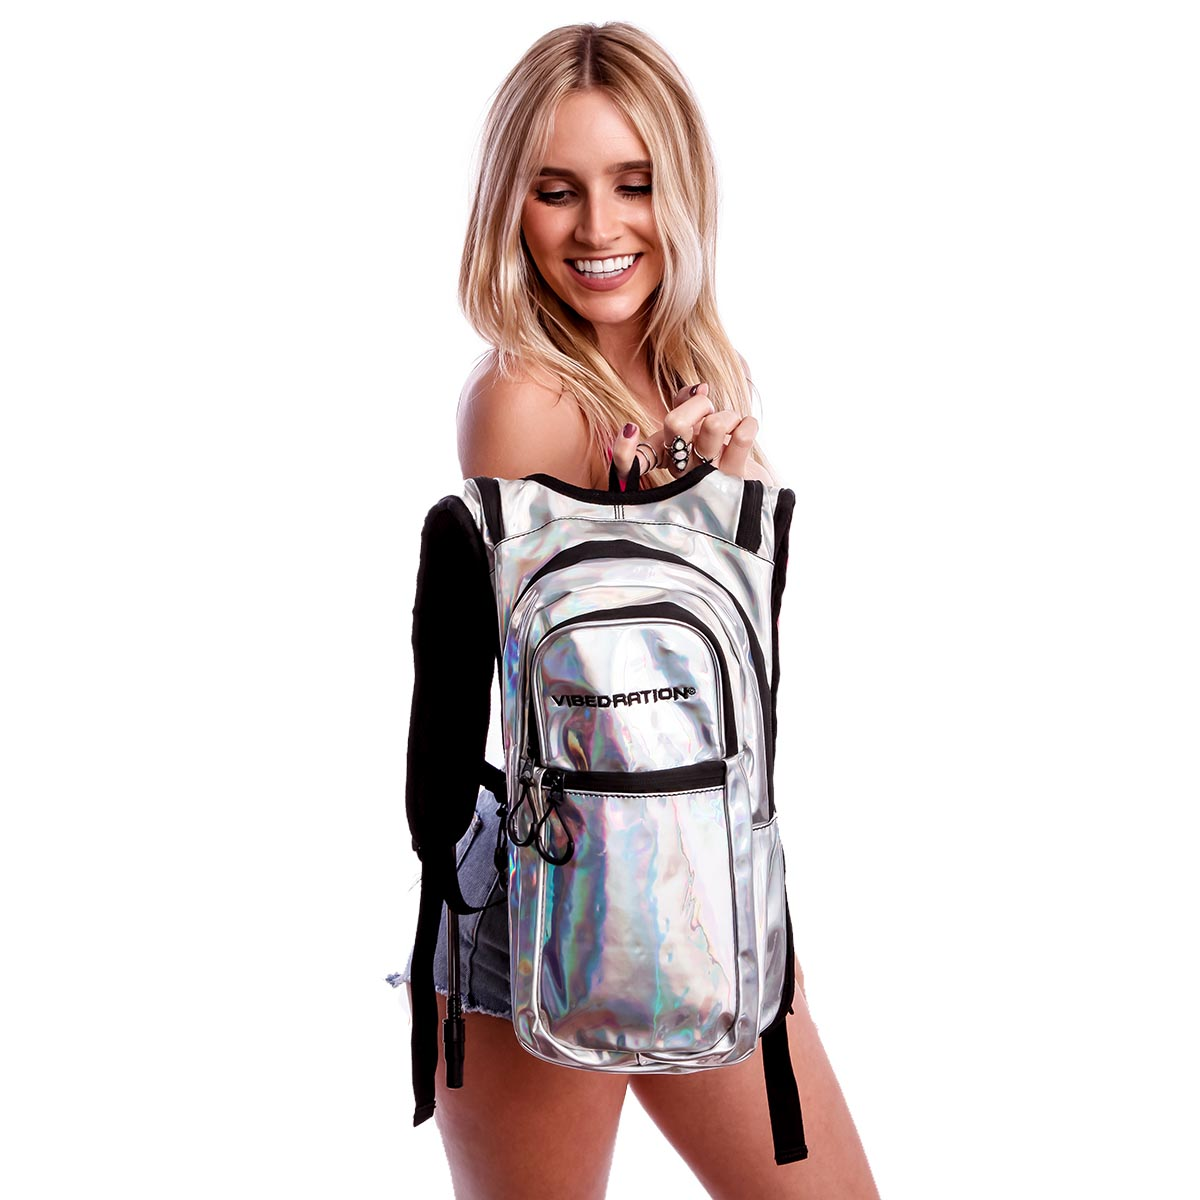 Female holding silver holographic hydration pack